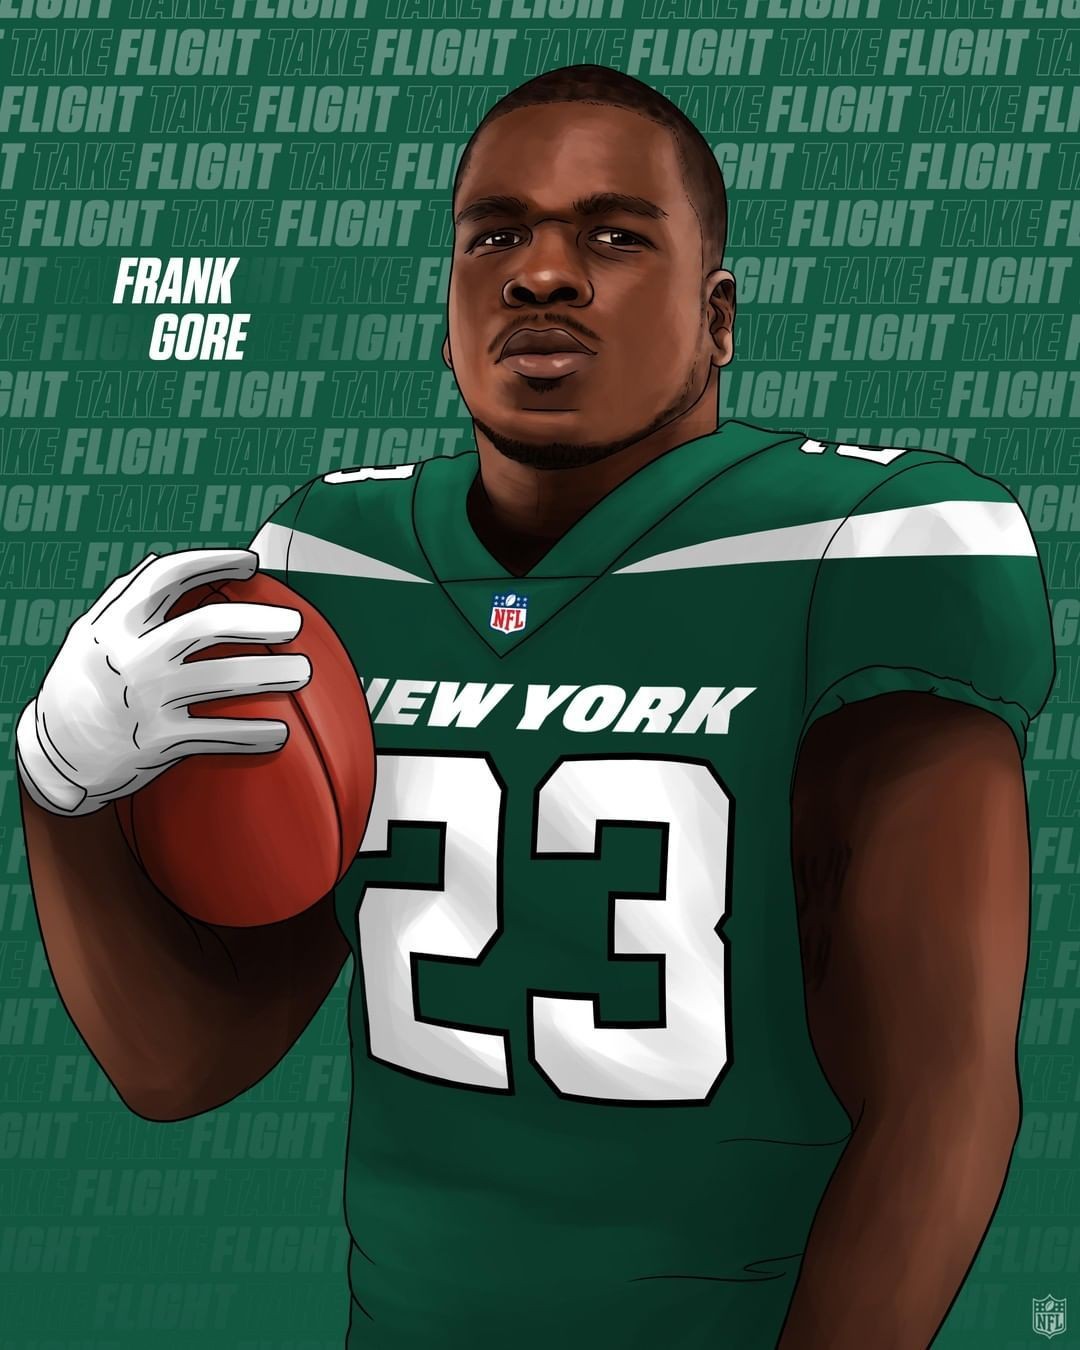 Nfl On Instagram 16th Season Welcome To The Nyjets Frankgore In 2020 Nfl Nfl Football Art Ravens Football